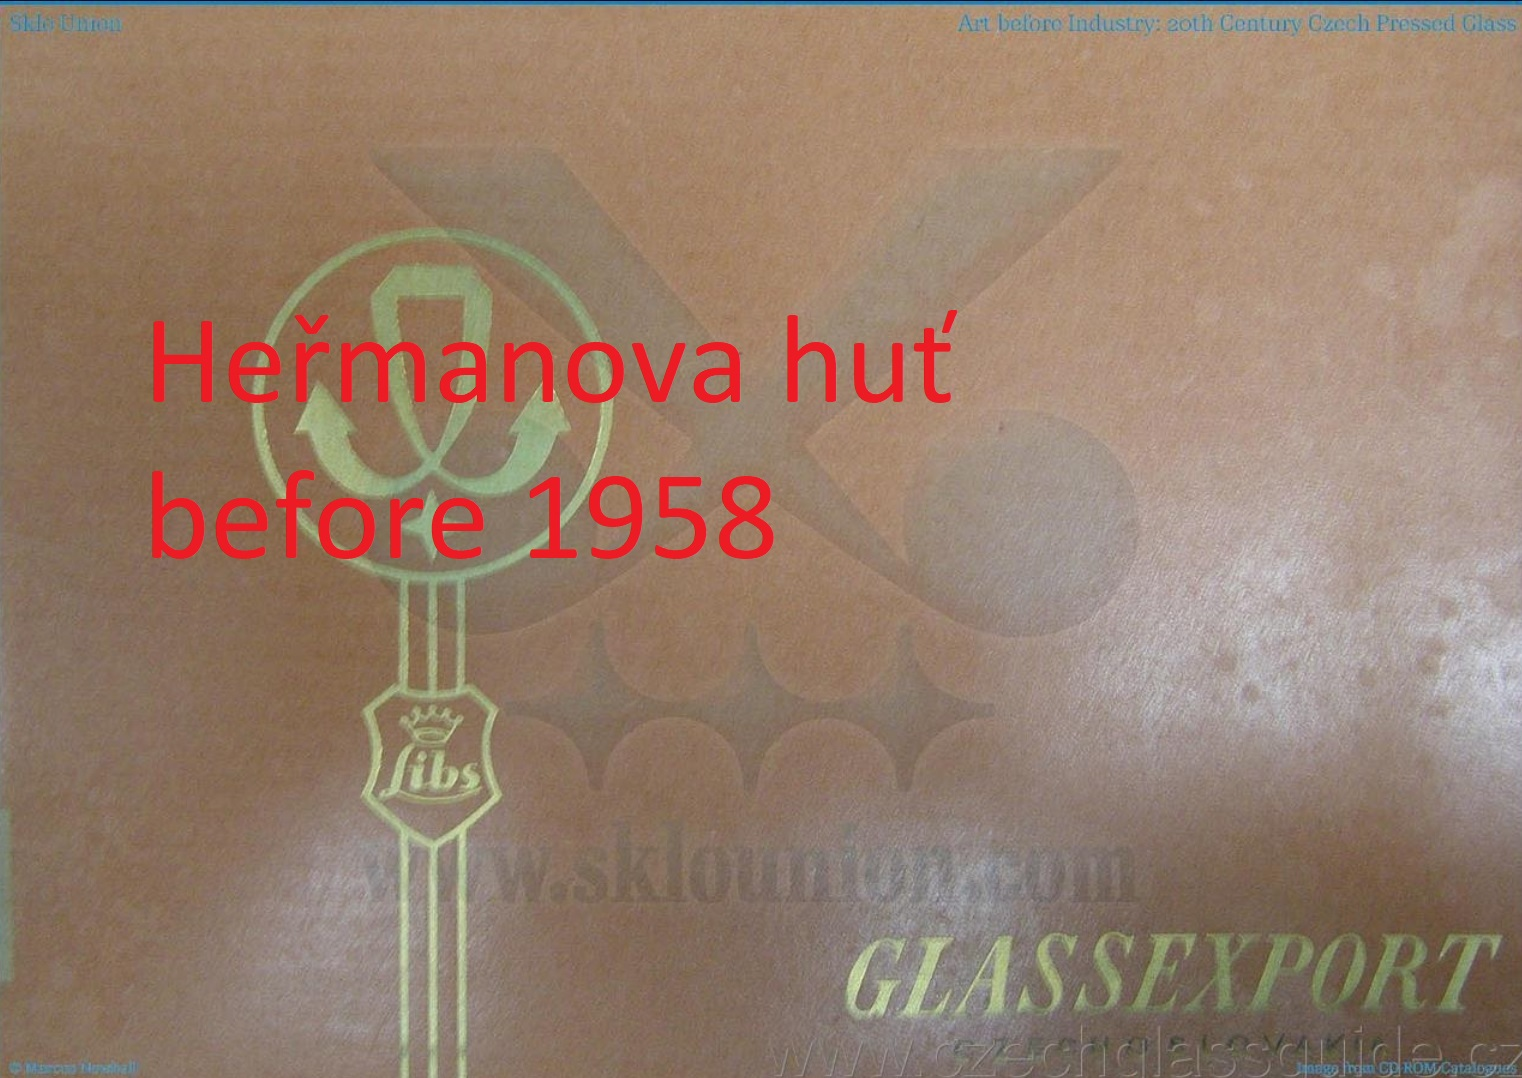 Heřmanova huť - Glassexport before 1958